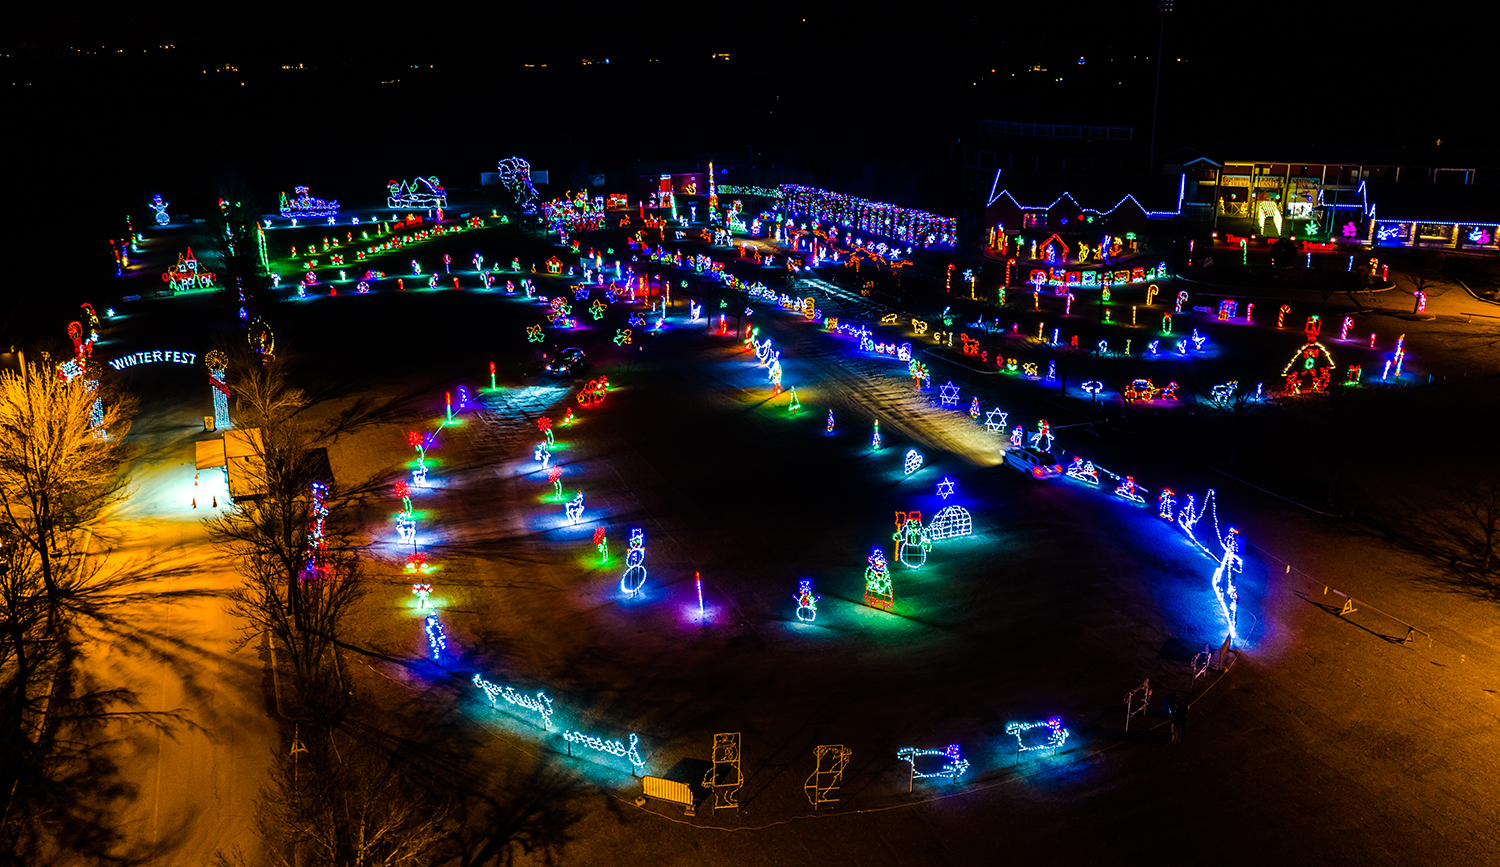 pnc bank arts center lights